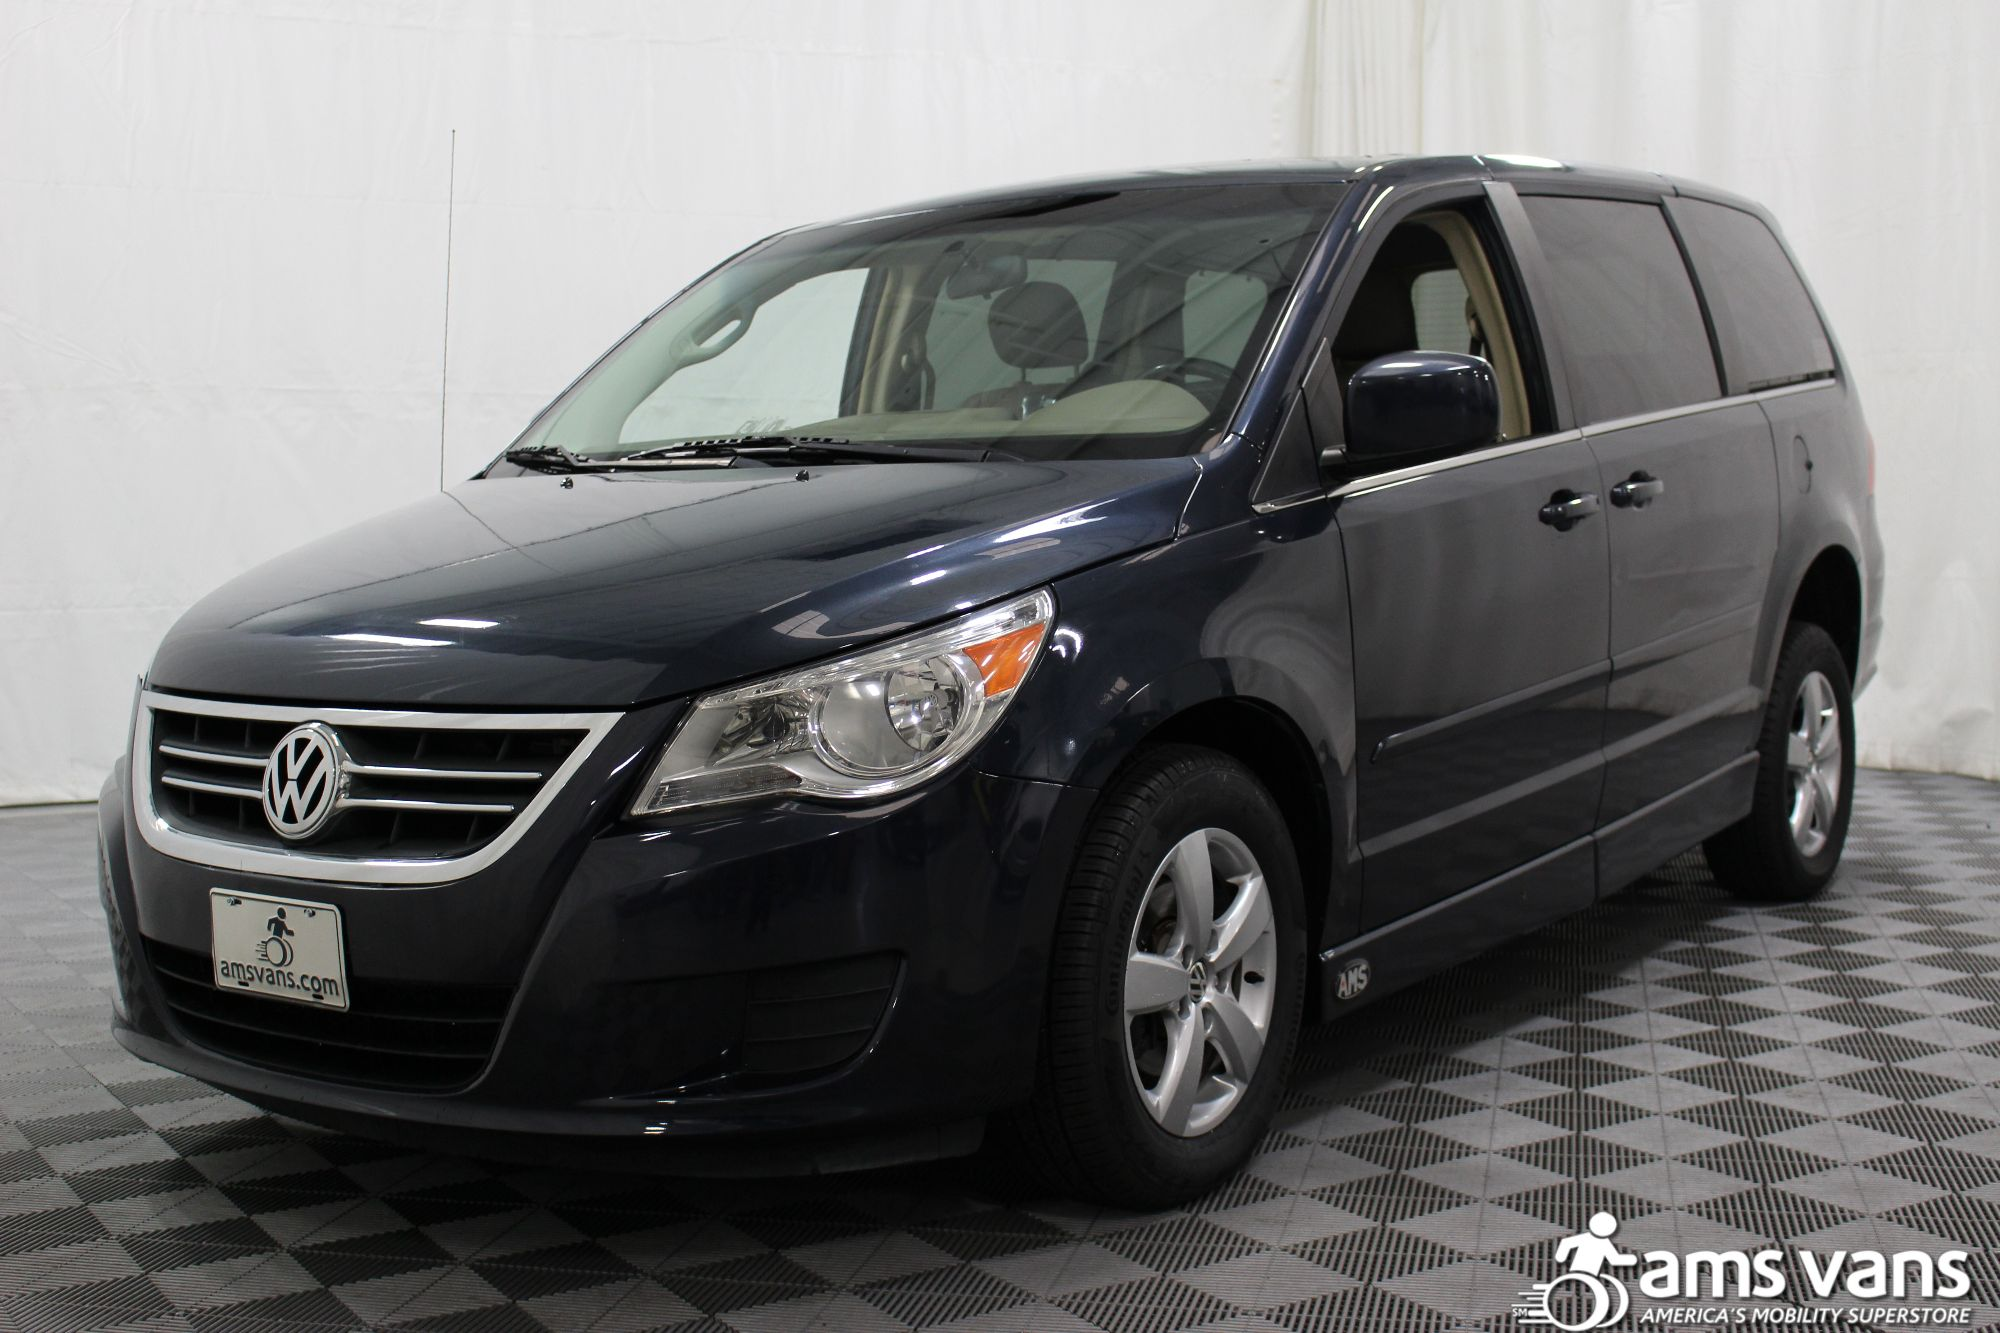 2009 Volkswagen Routan SE Wheelchair Van For Sale #17